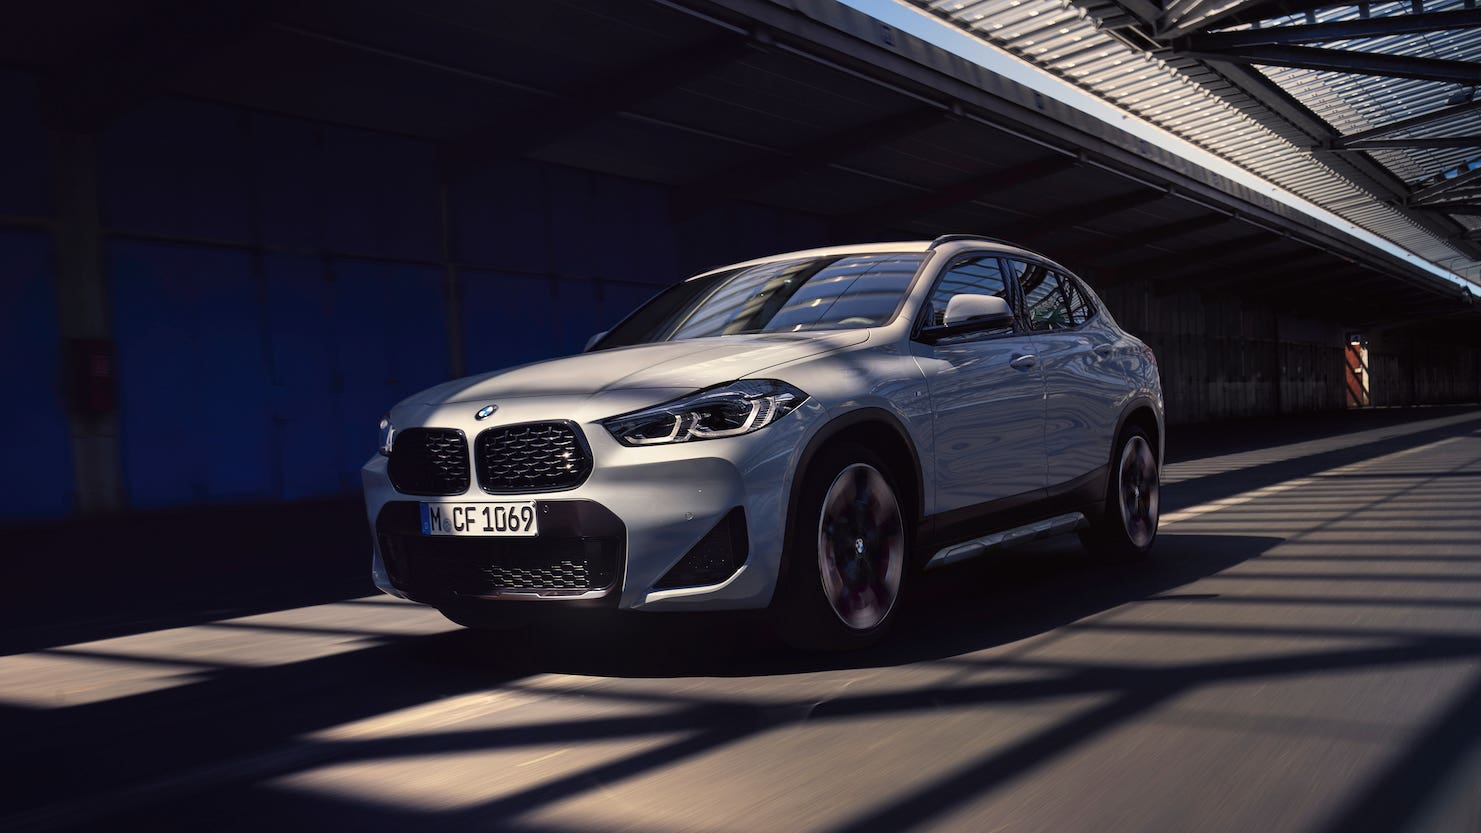 BMW X2 M Mesh Edition arrives in the UK priced from £34,510